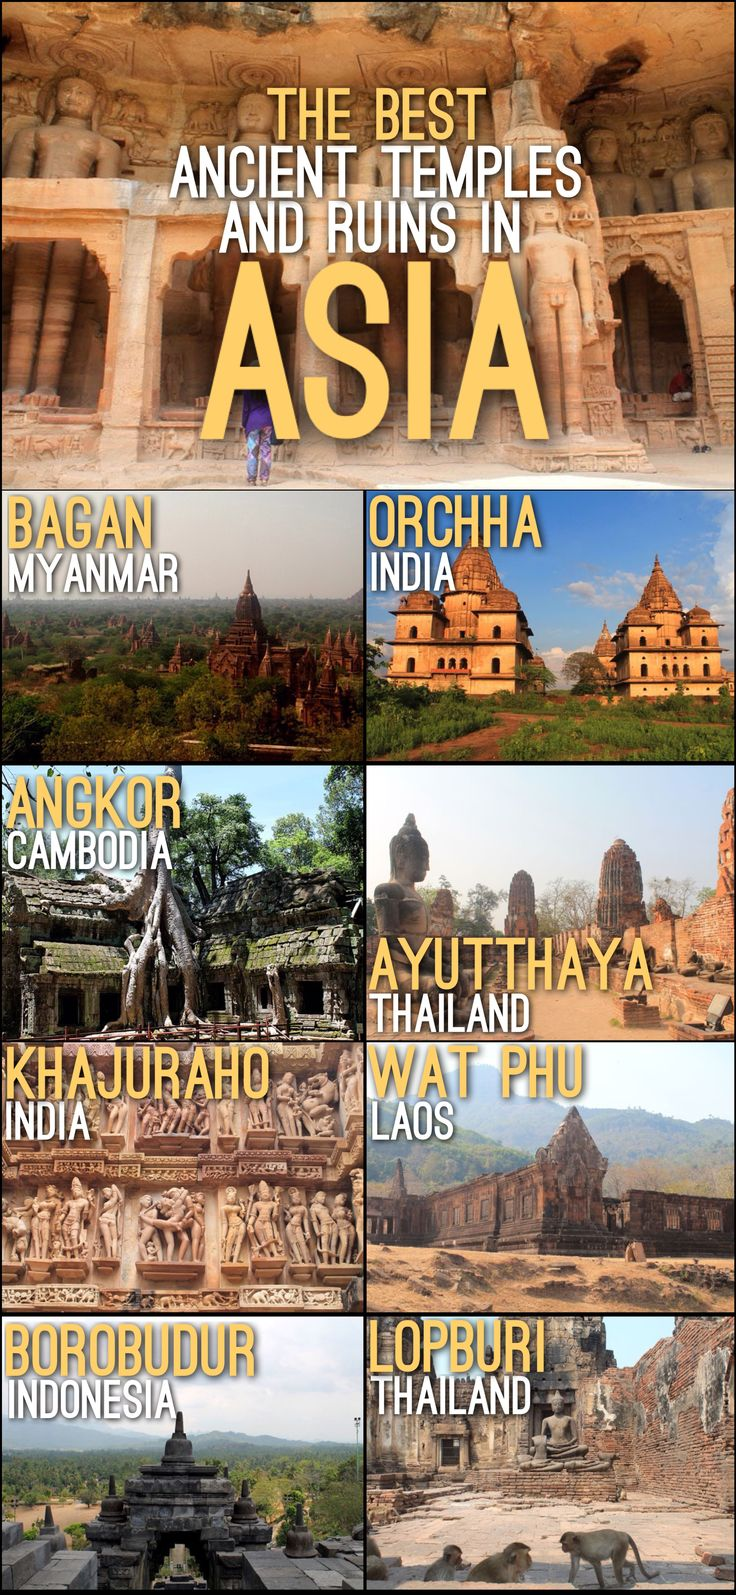 Some of the best ancient temples and ruins in Asia, including Angkor Wat, Ayutthaya, Bagan and Borobudur.